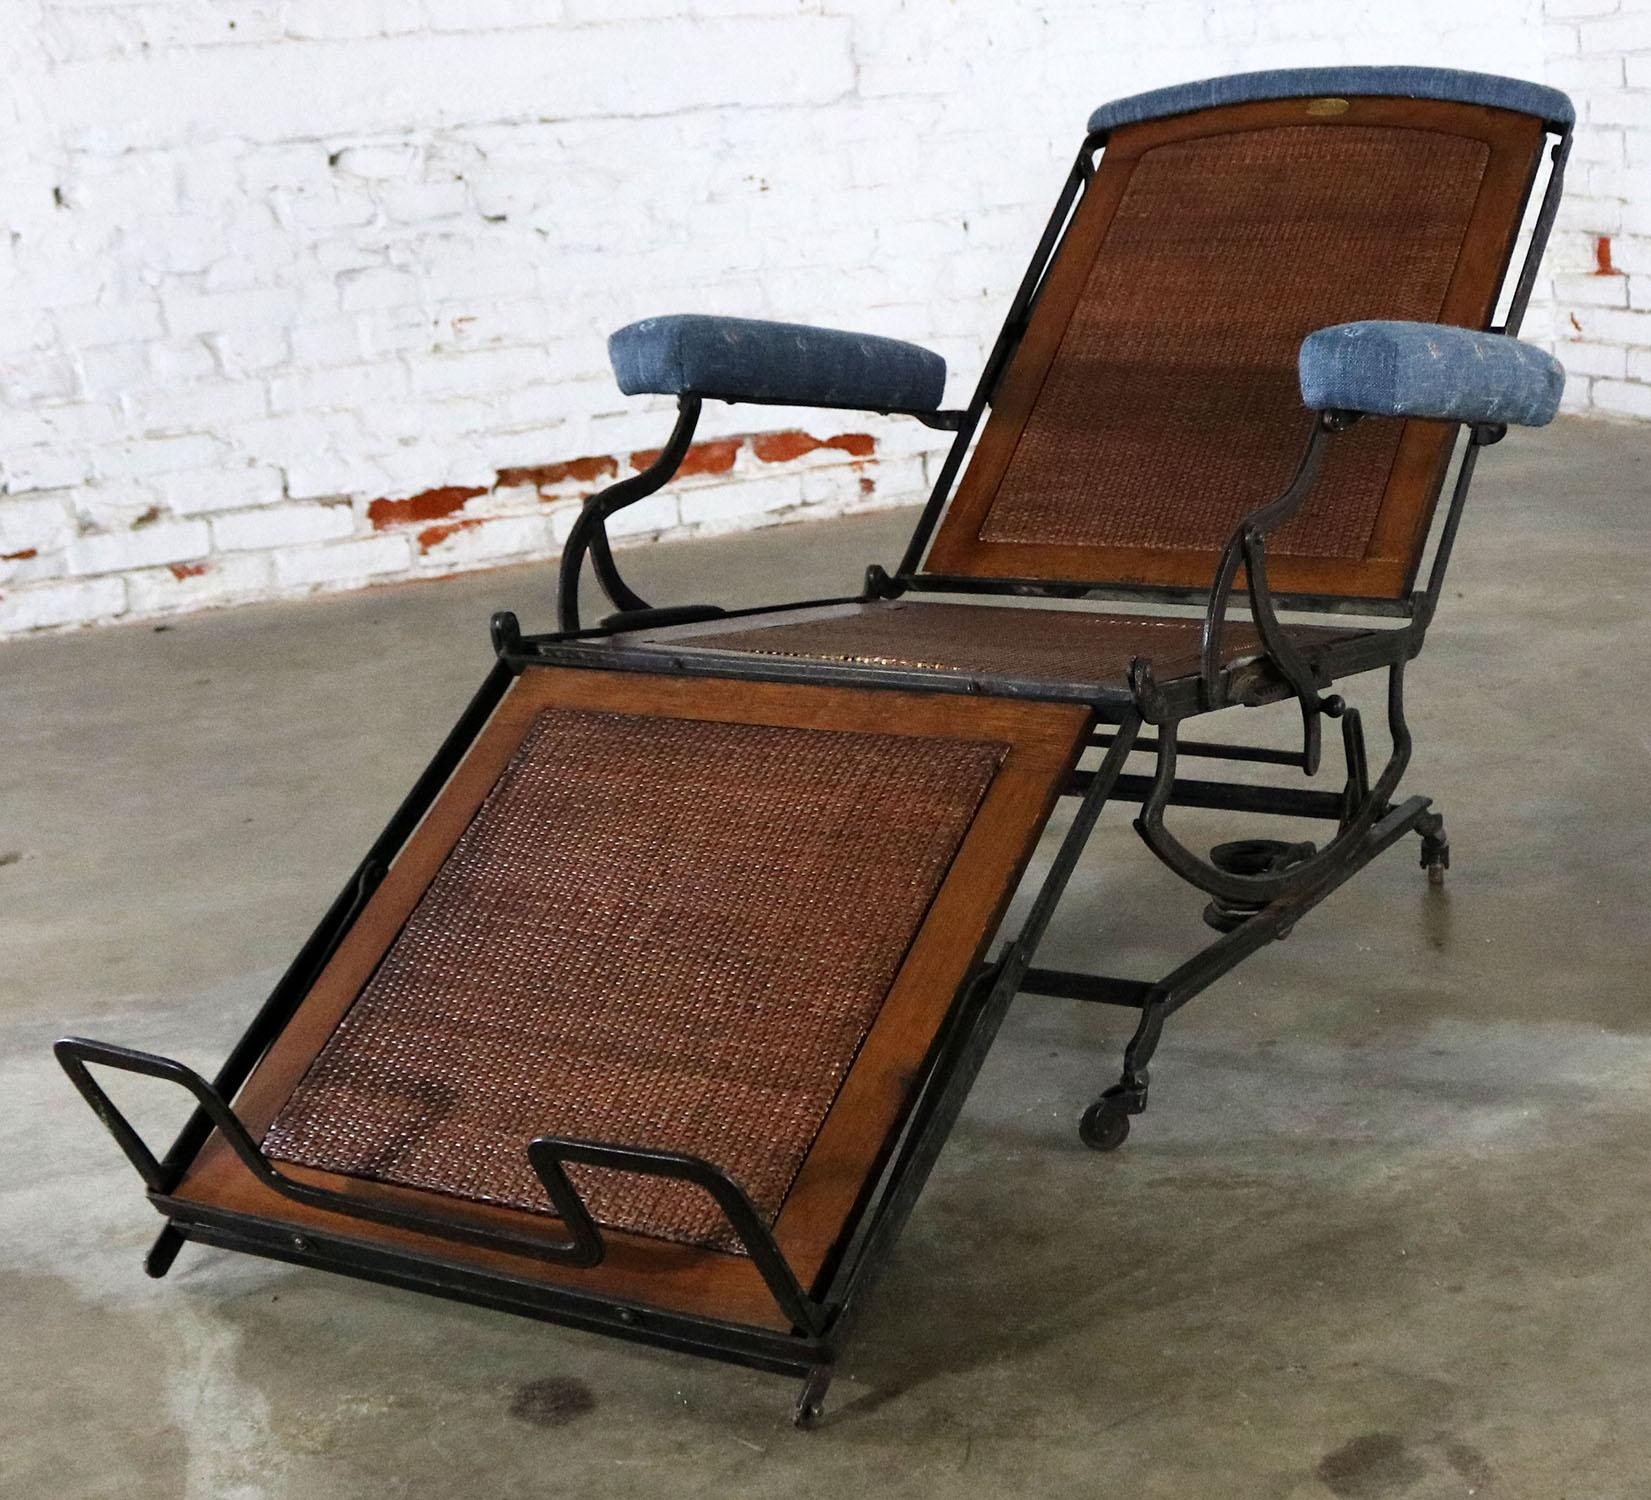 Antique adjustable folding c&aign style invalid chair or deck chair by the Marks Adjustable Chair Co & Marks Adjustable Folding Chair Company Campaign Style | Chairish